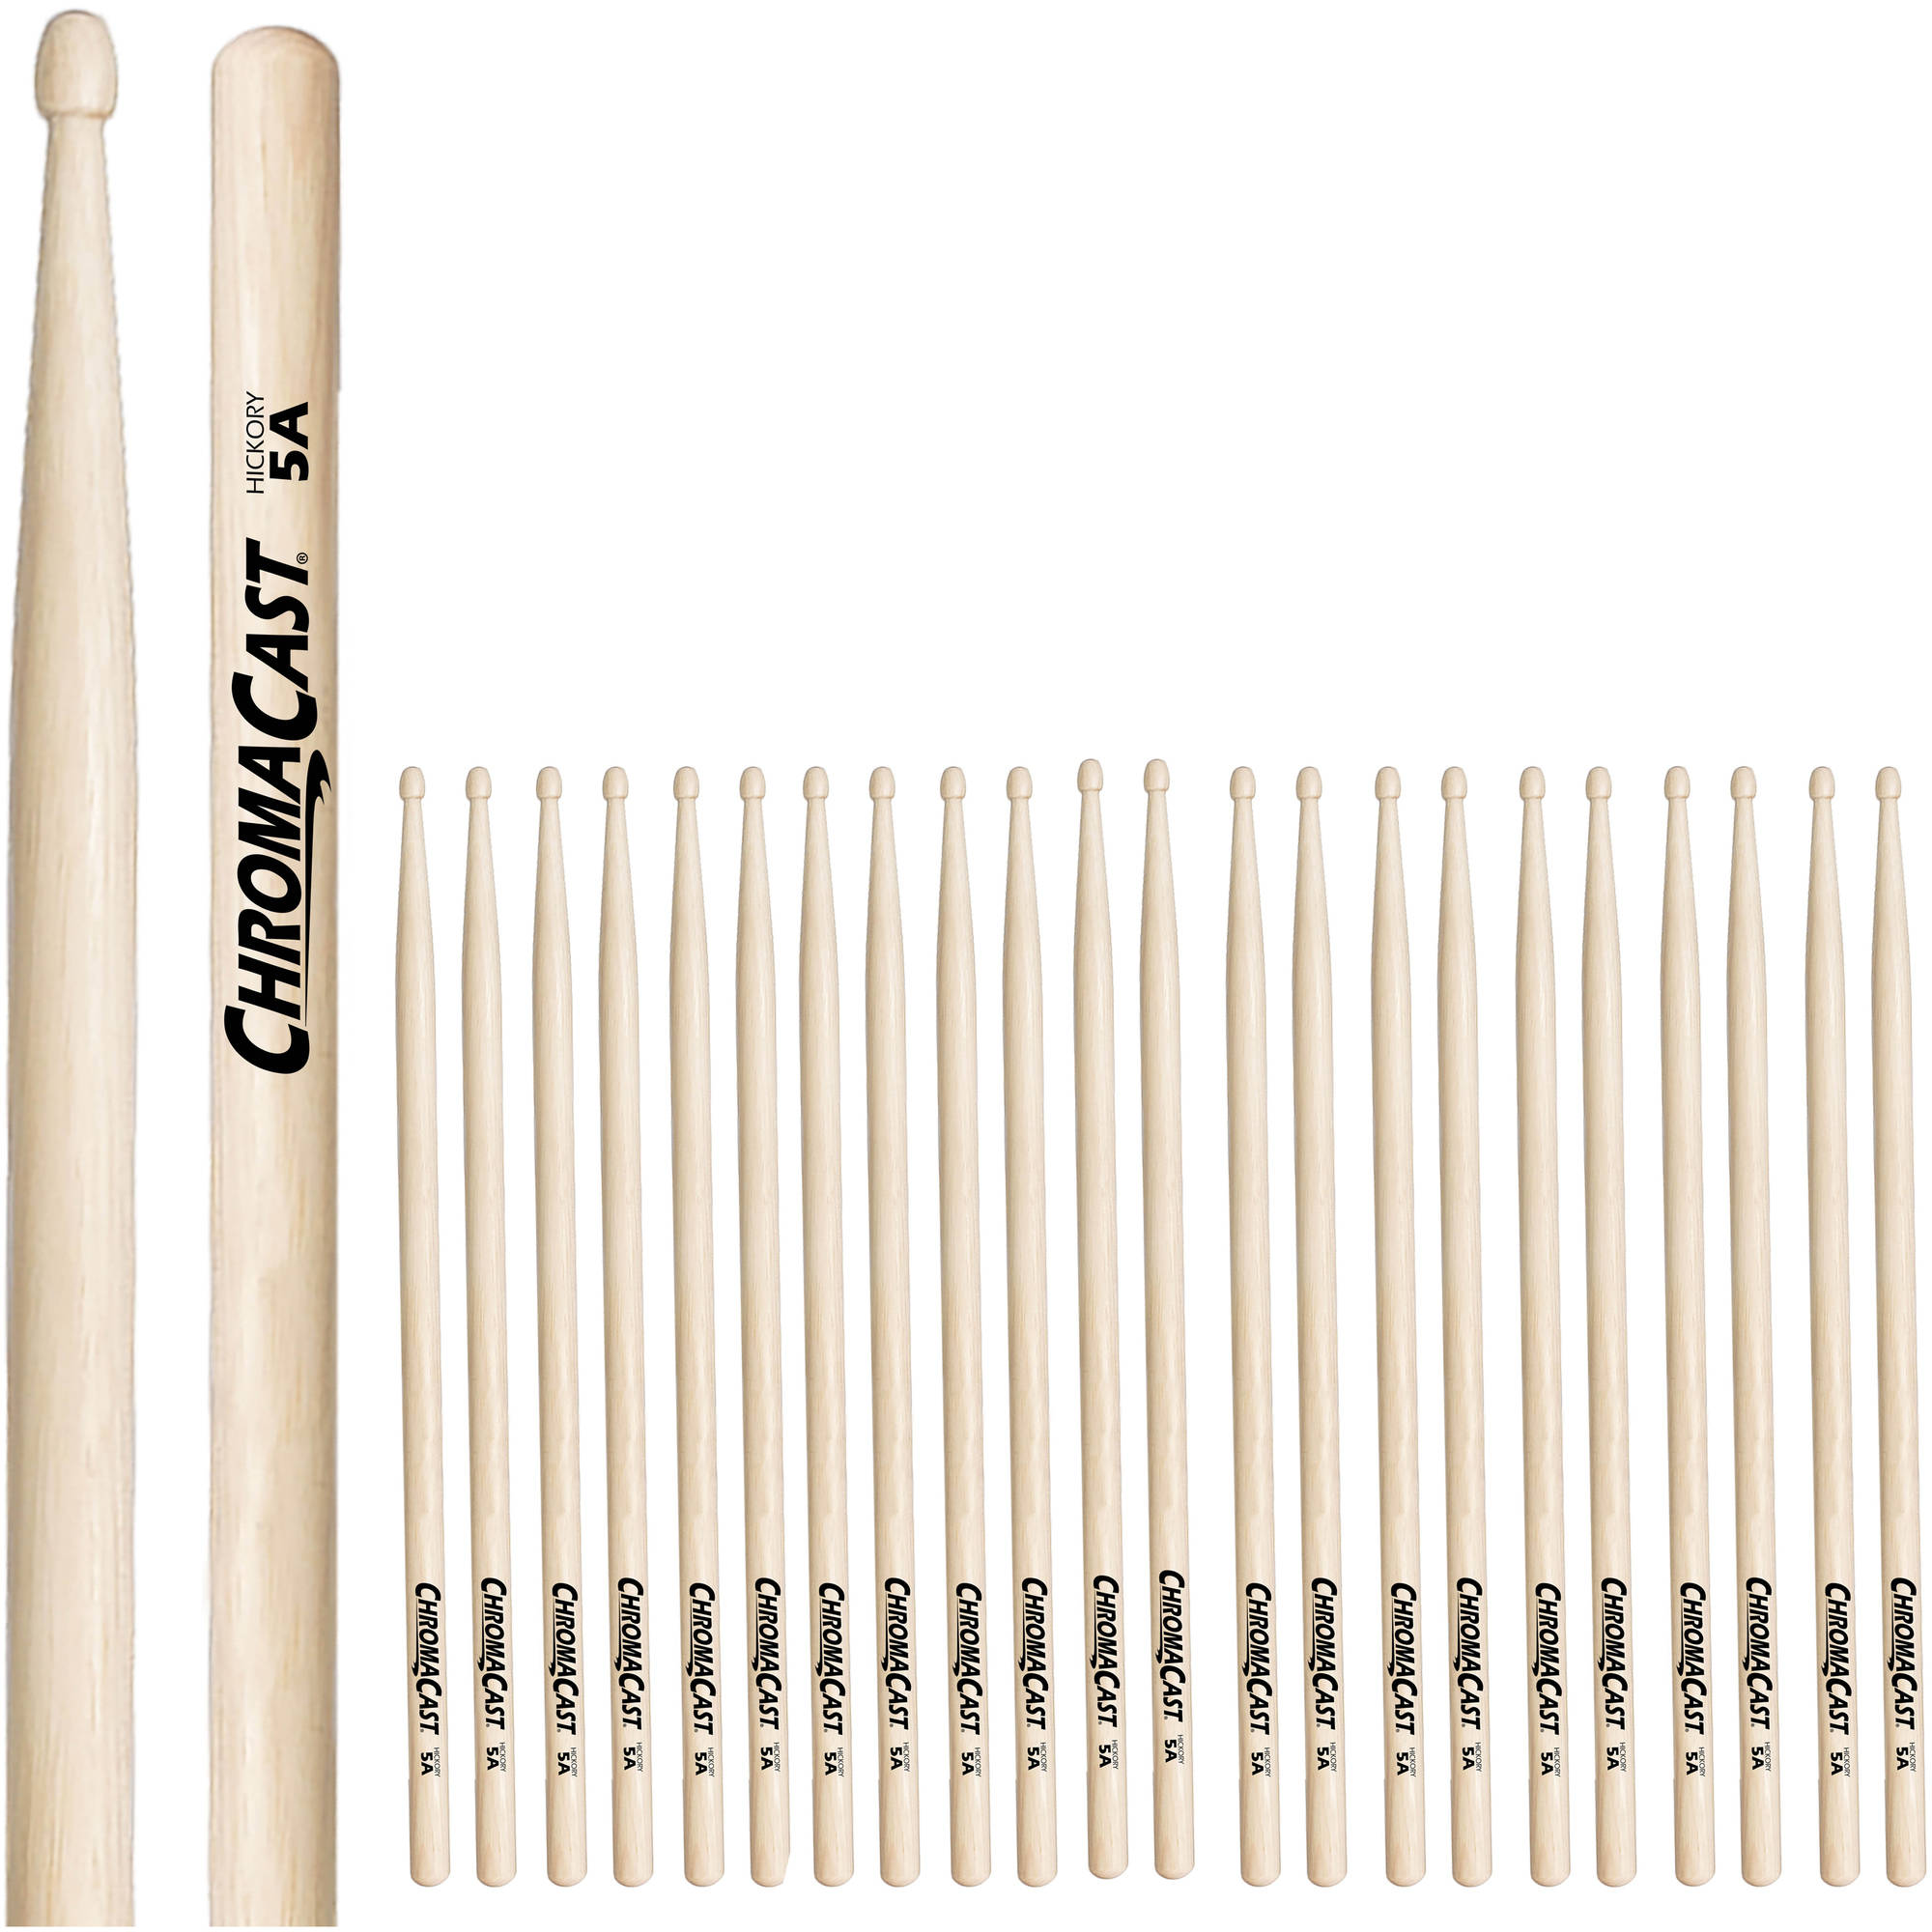 ChromaCast 5A Hickory Drumsticks, 12 Pairs by ChromaCast